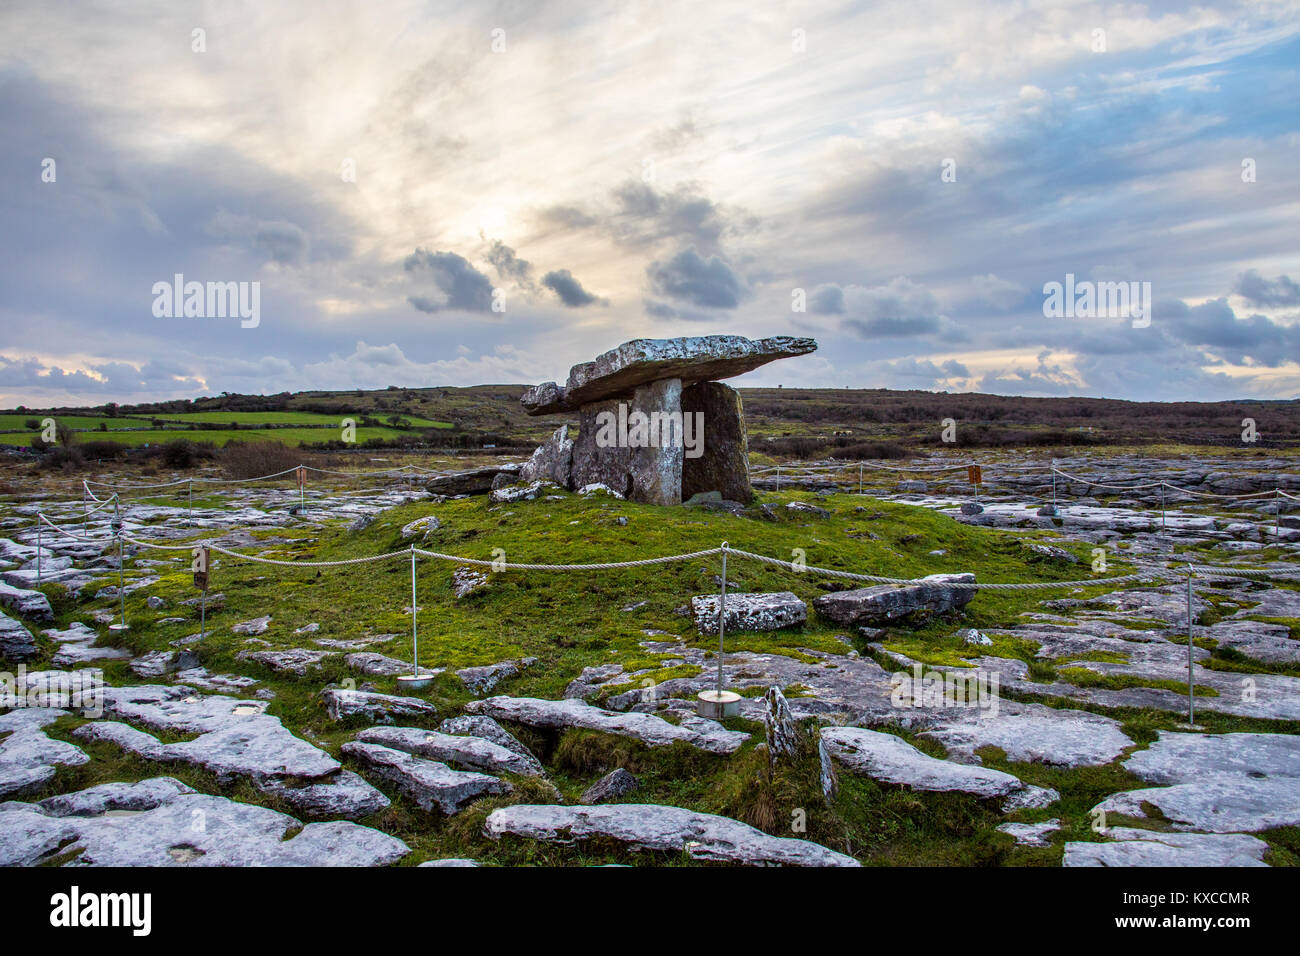 Poulnabrone Dolmen, ancient portal tomb, The Burren, Co Clare, Ireland - Stock Image